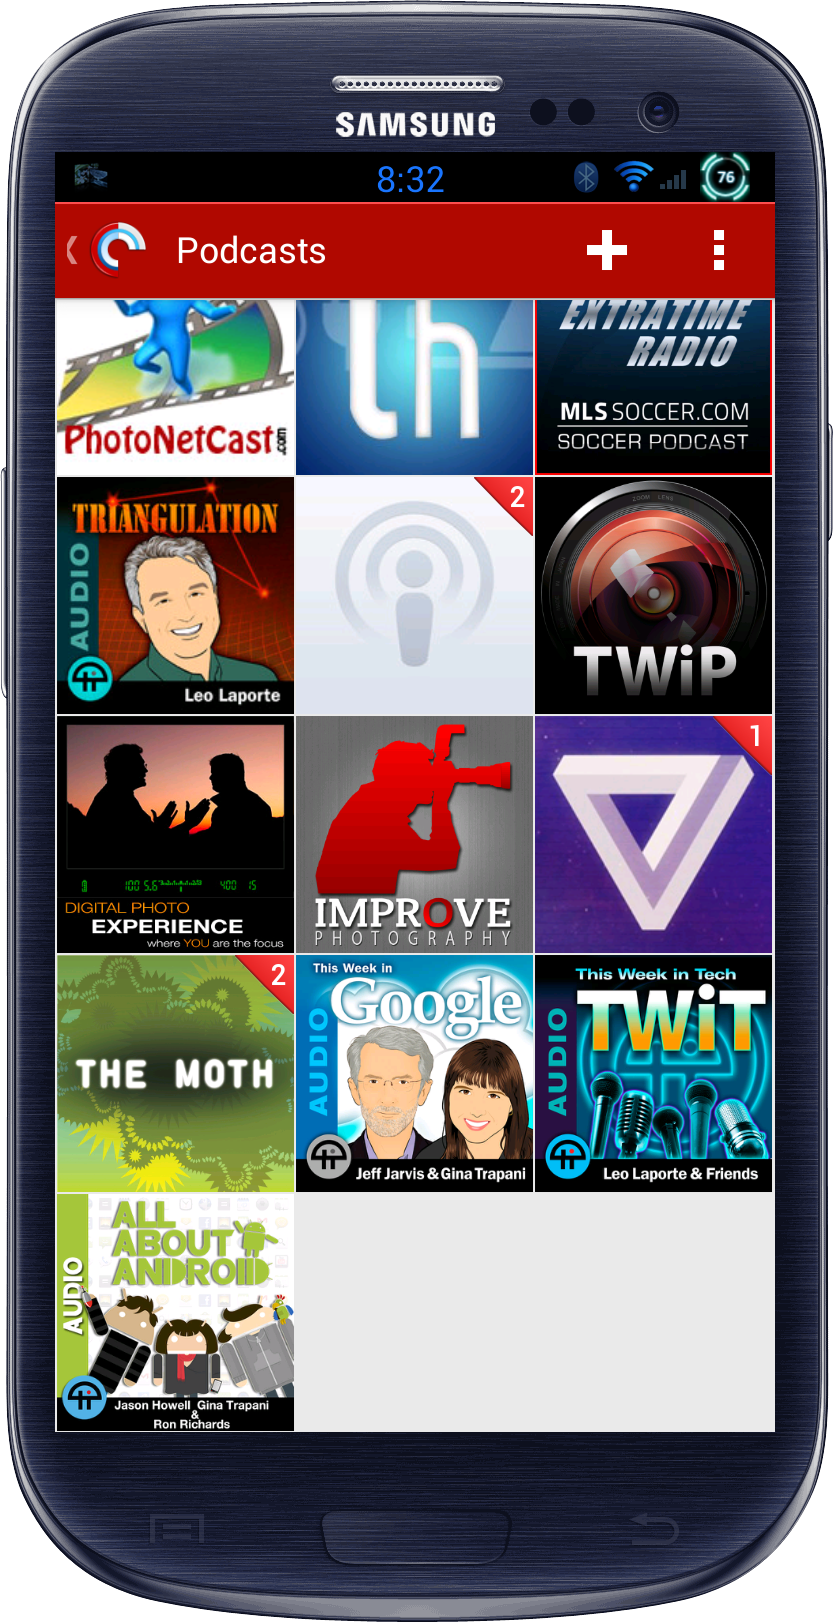 Page 2 of Podcasts - Triangulation, Sword and Laser, This Week in Photo, Digital Photo Experience, Improve Photography, The Verge, The Moth, This Week in Google, This Week in Tech, All About Android.